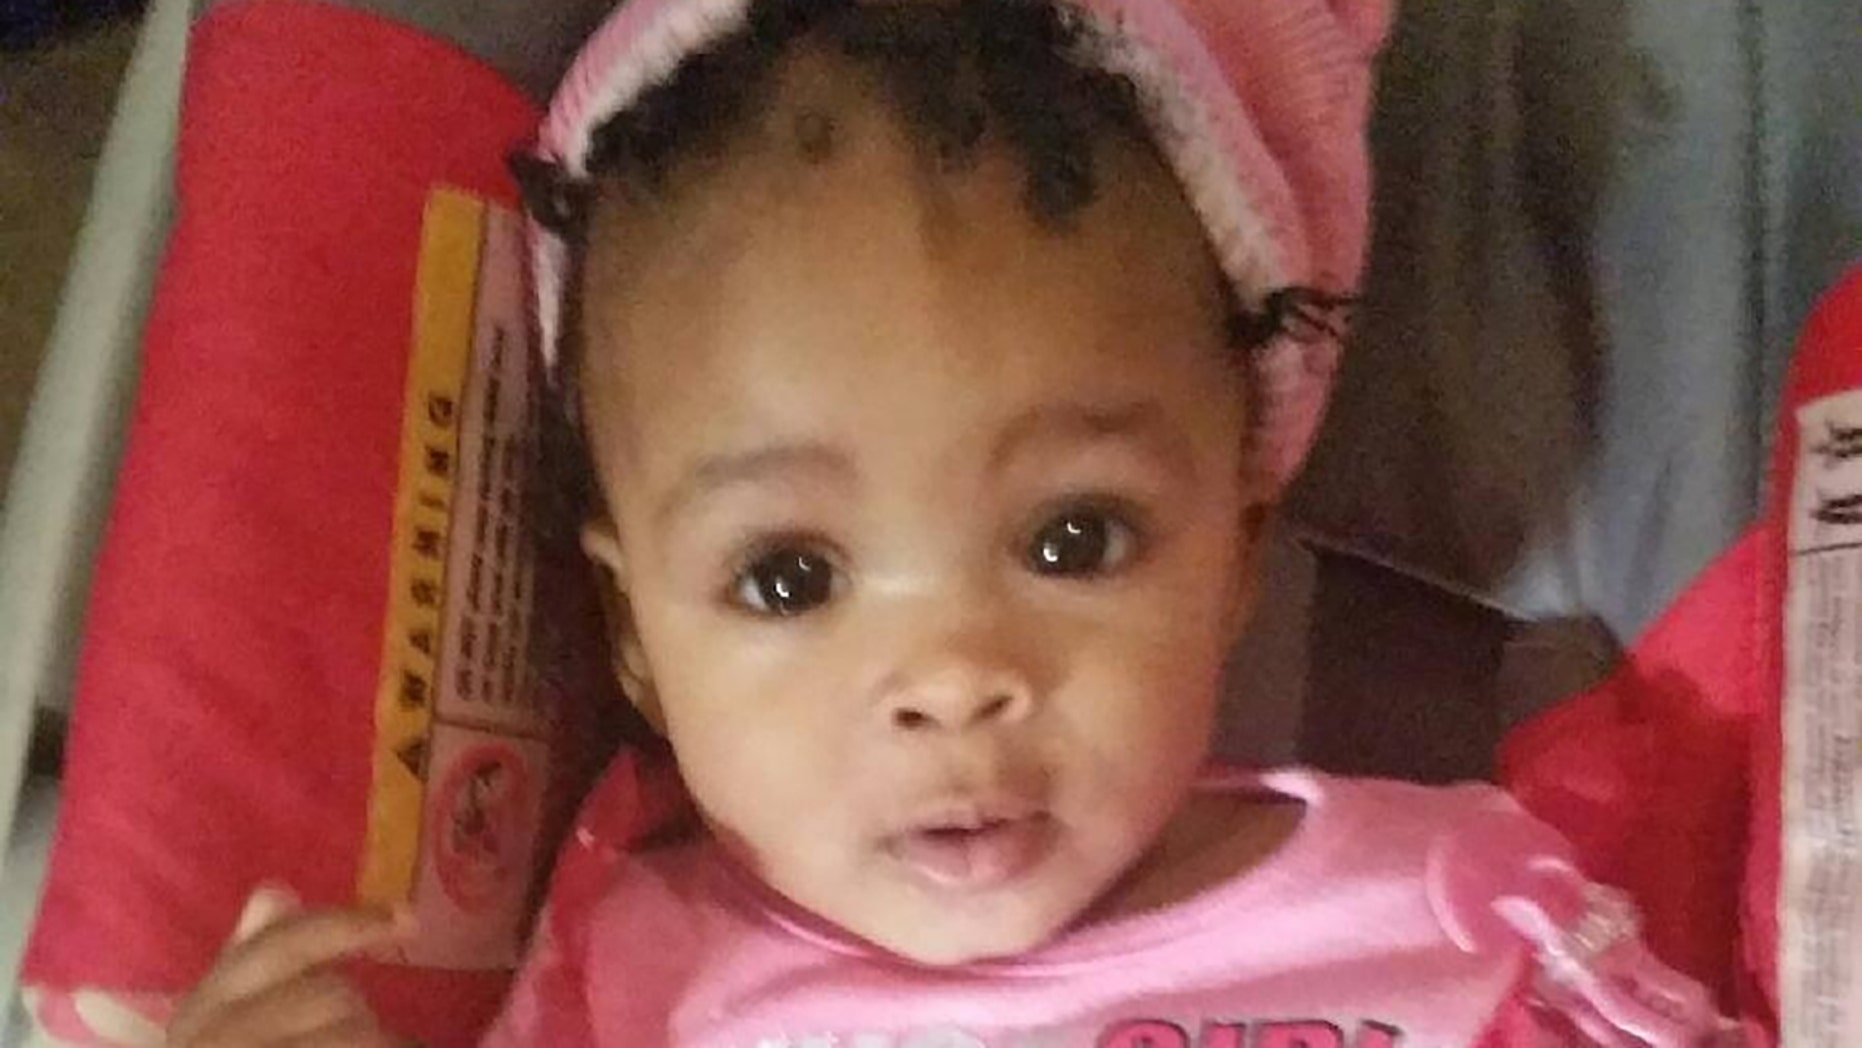 Royalty Marie Floyd was still alive when her grandmother put the 20-month-old toddler inside an oven at her Mississippi home, a coroner's report said earlier this week.